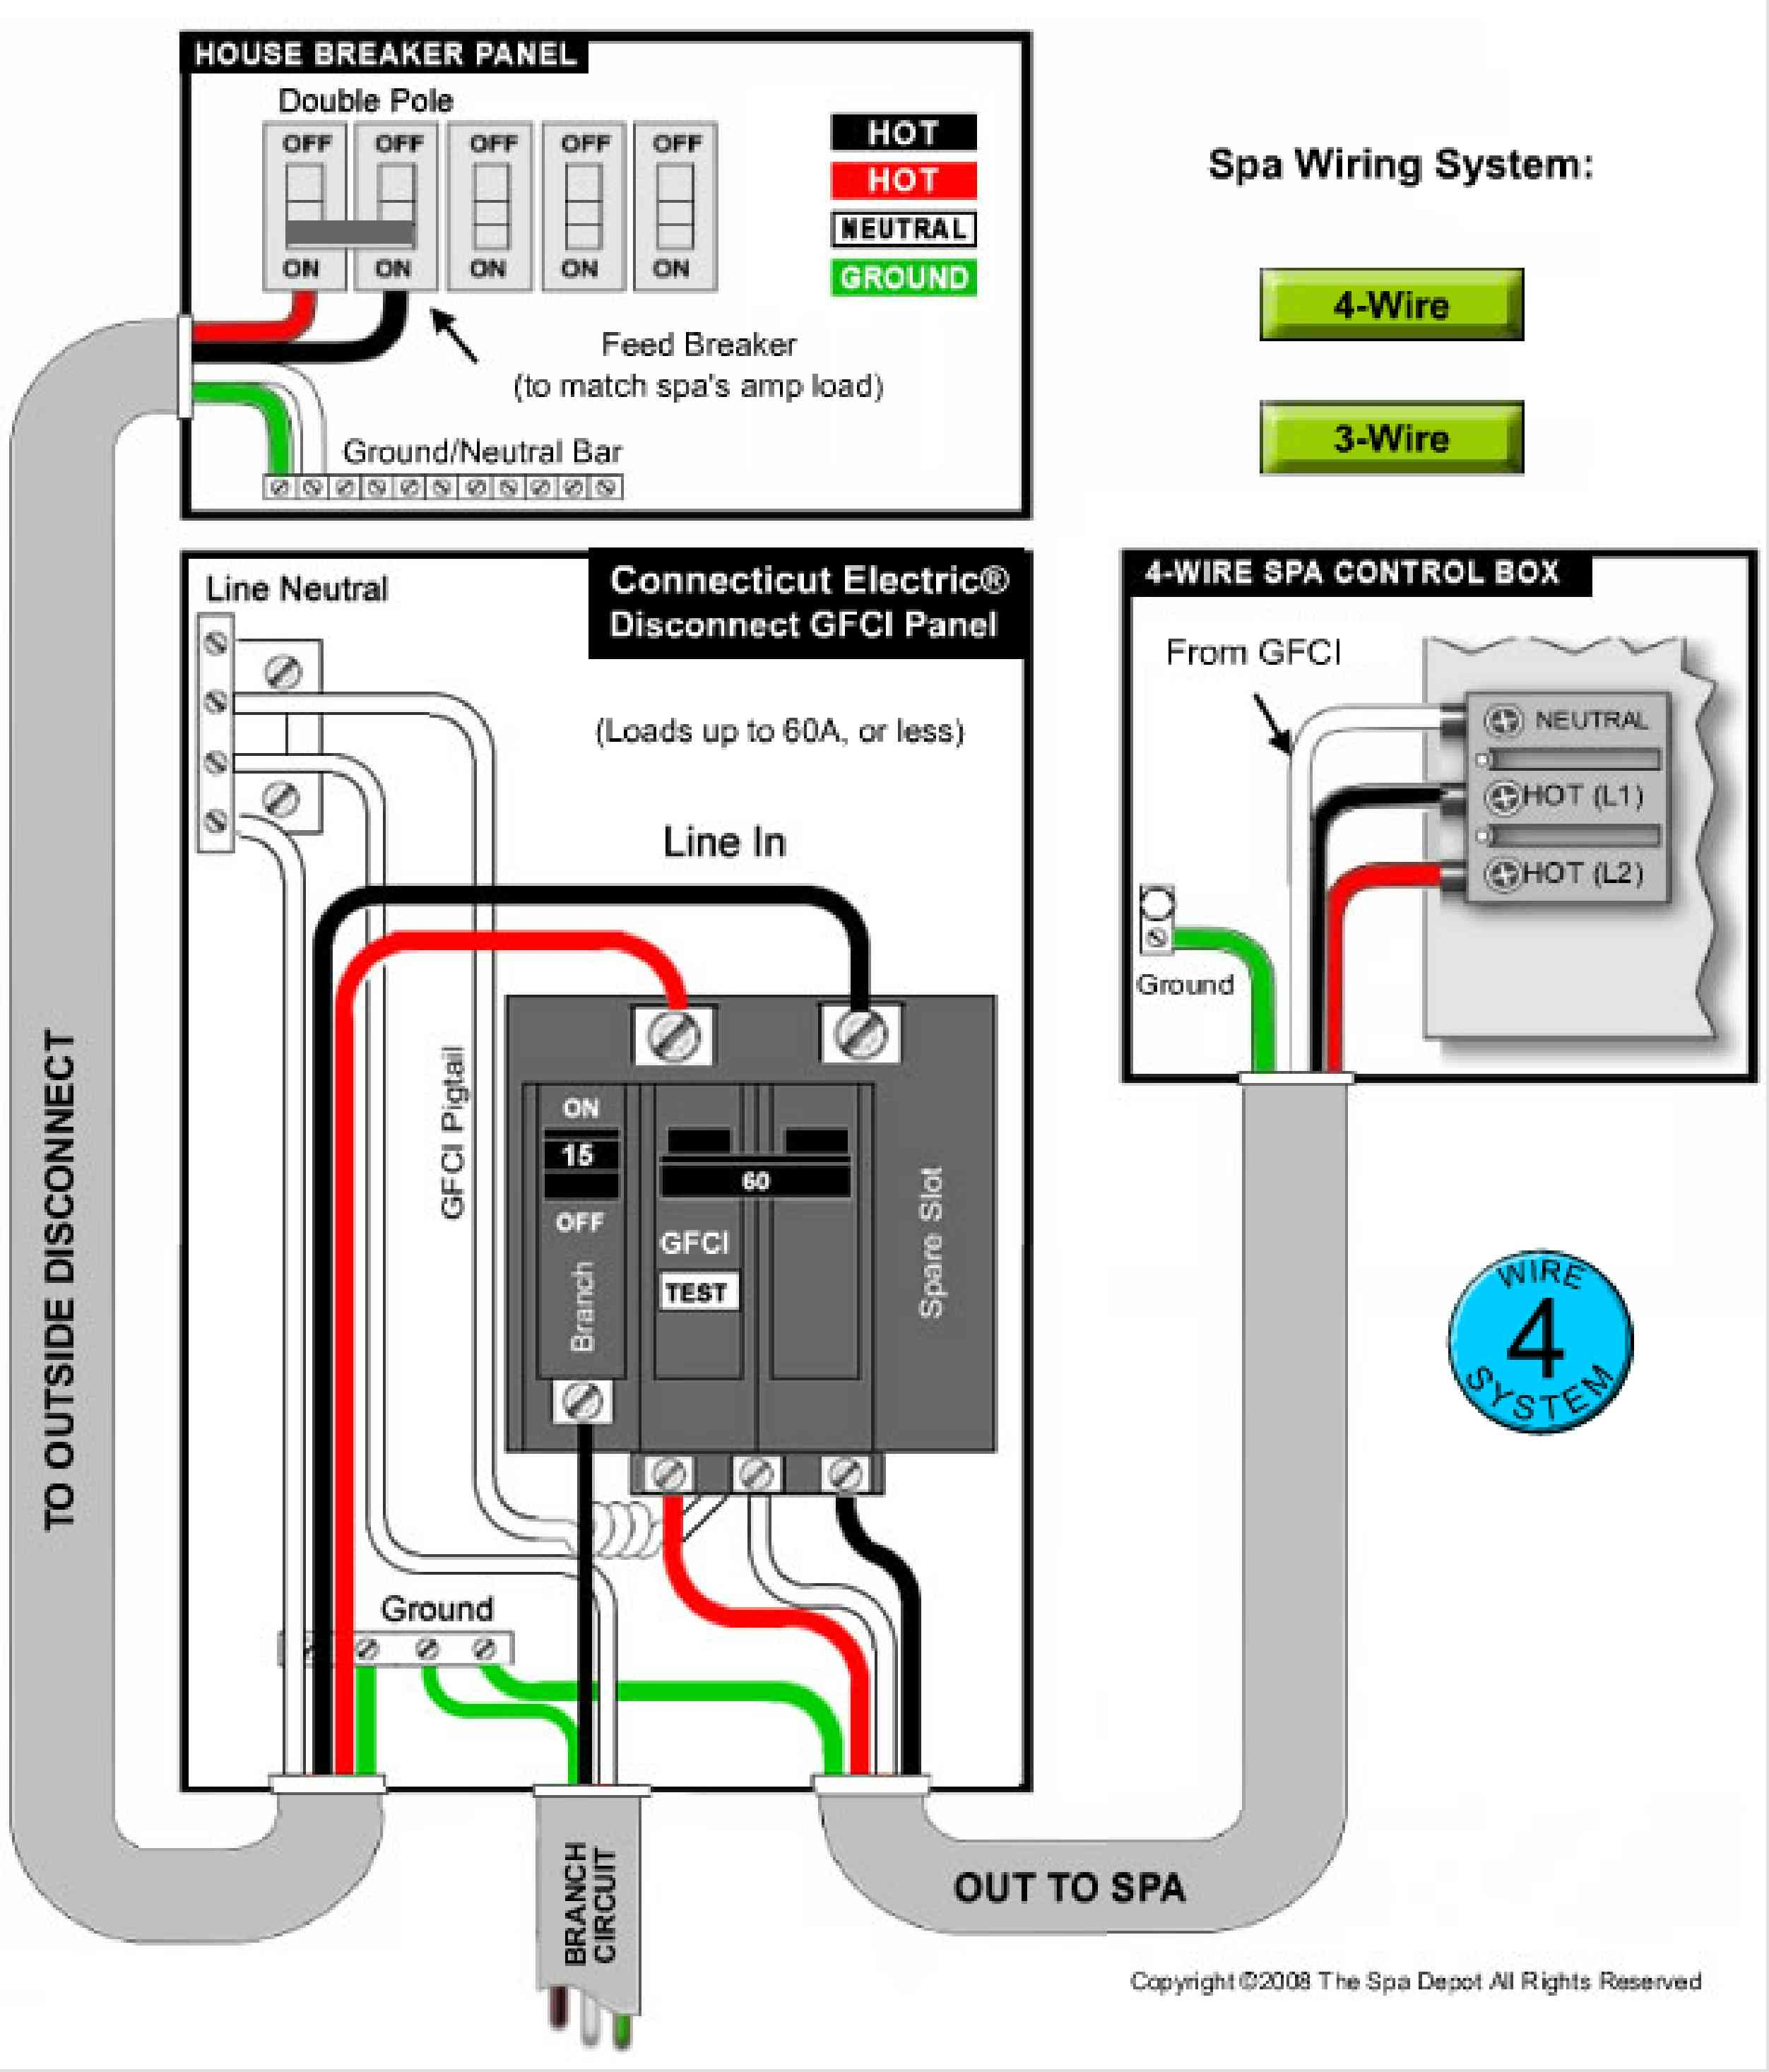 hot tub wire diagram hot image wiring diagram spa wiring diagram spa image wiring diagram on hot tub wire diagram